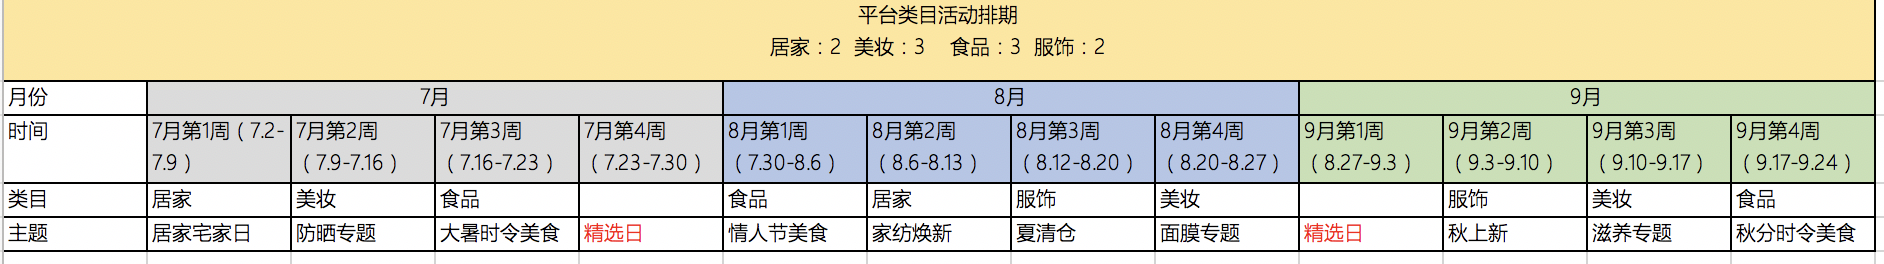 WX20190613-173353@2x.png